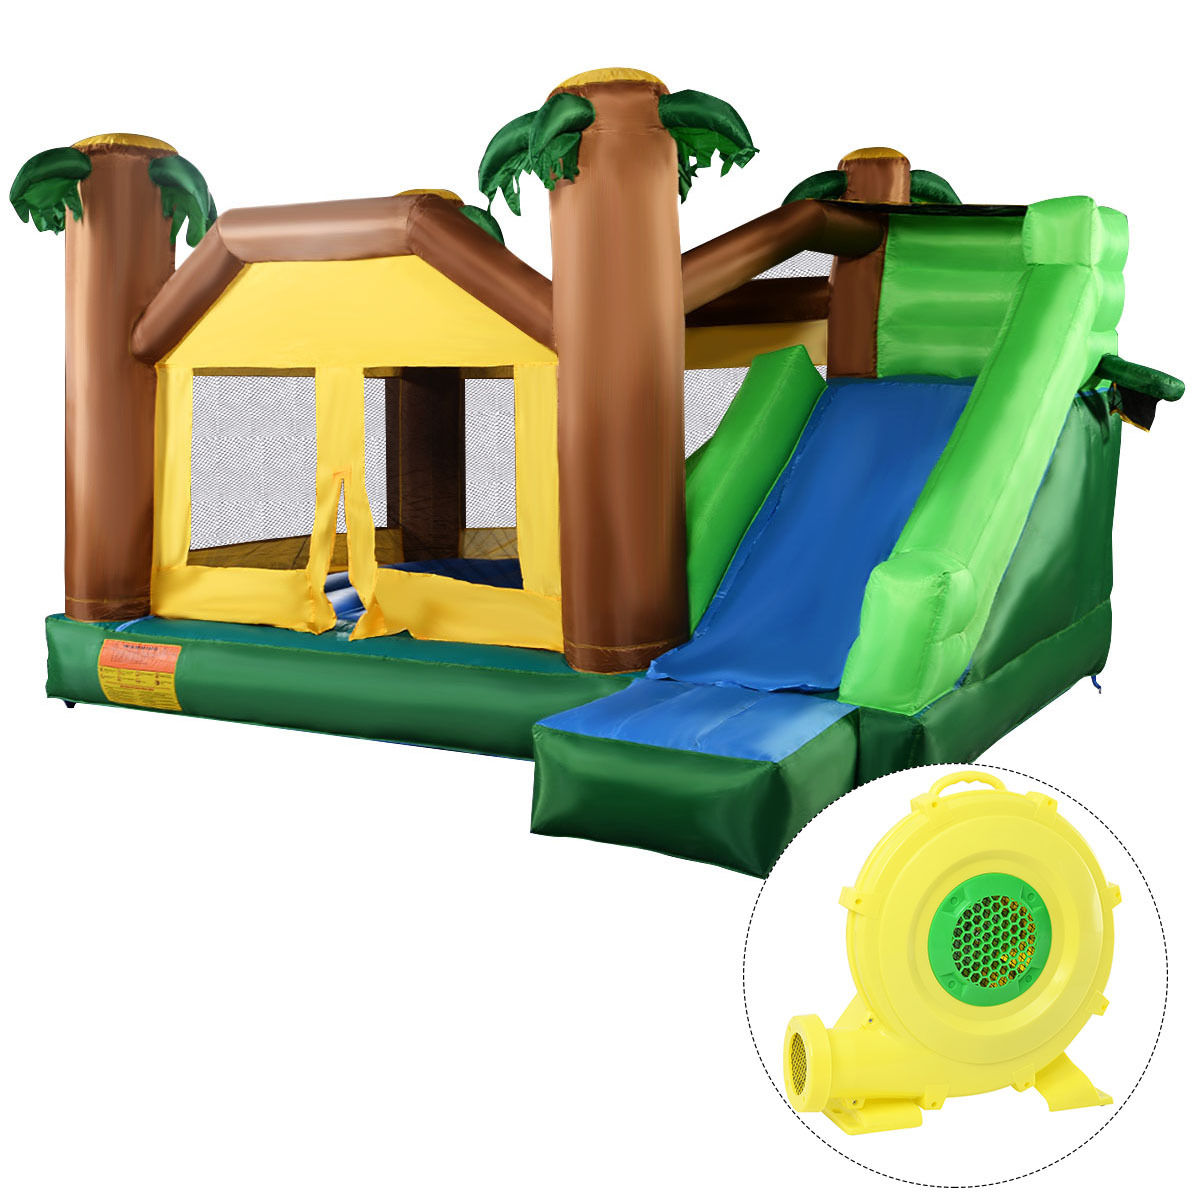 Costway Inflatable Jungle Bounce House Jumper Bouncy Jump Castle w/ 680W Blower